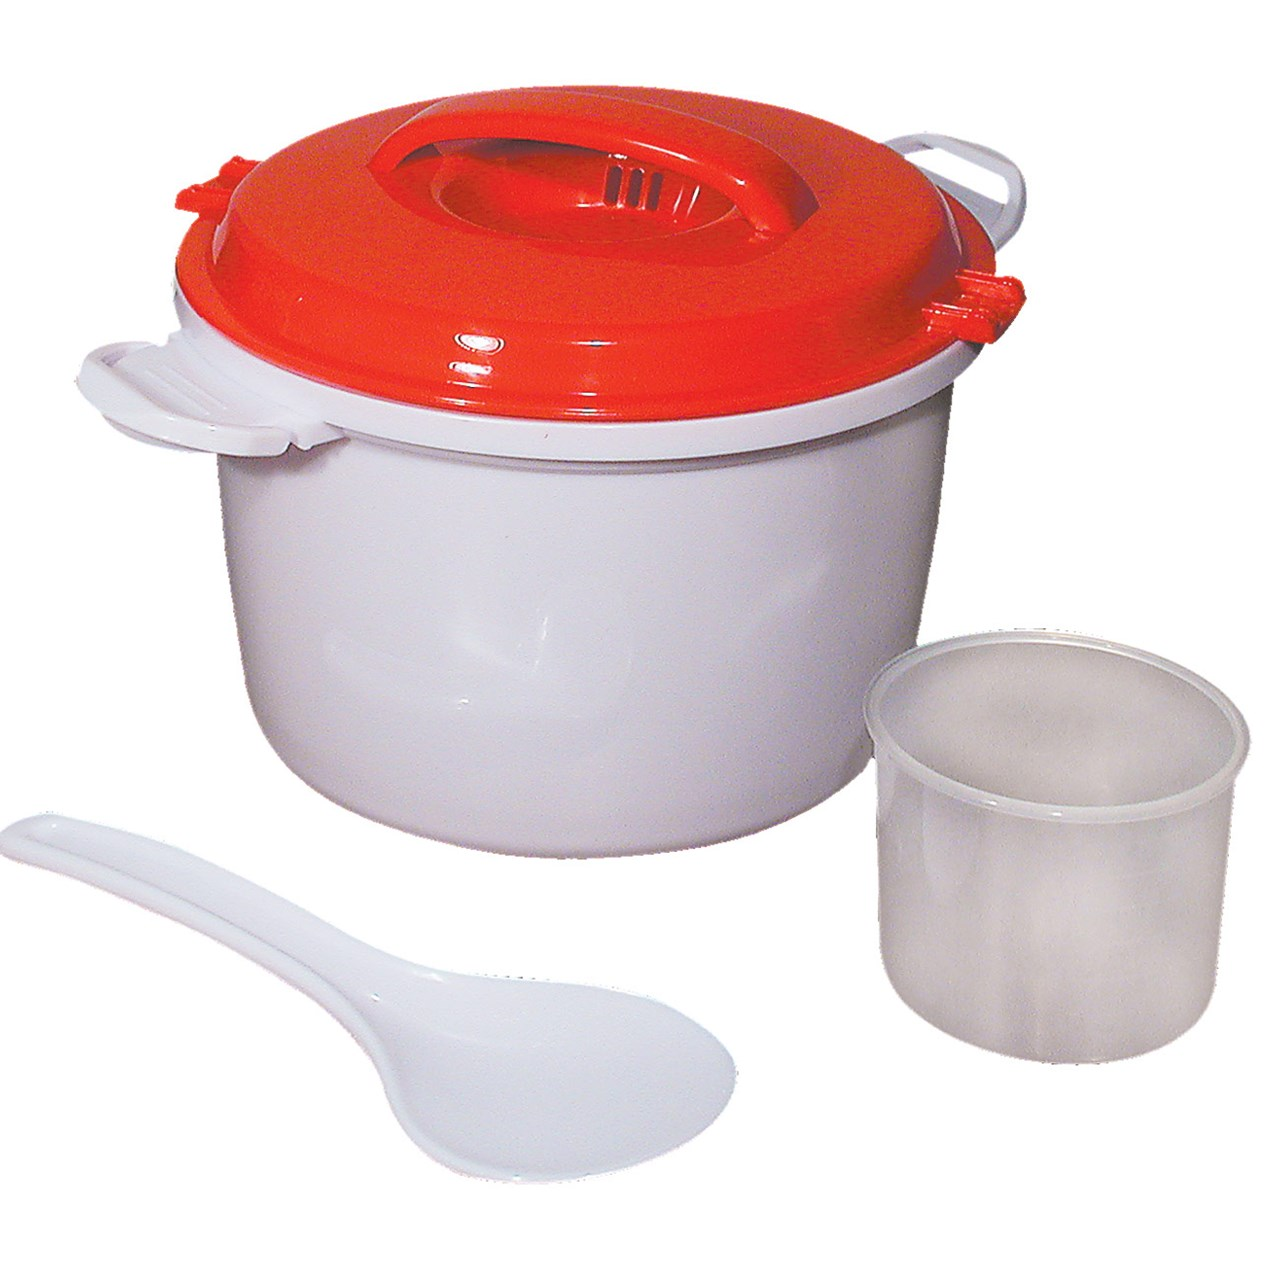 Tupperware rice maker cooker instructions how to cook different.